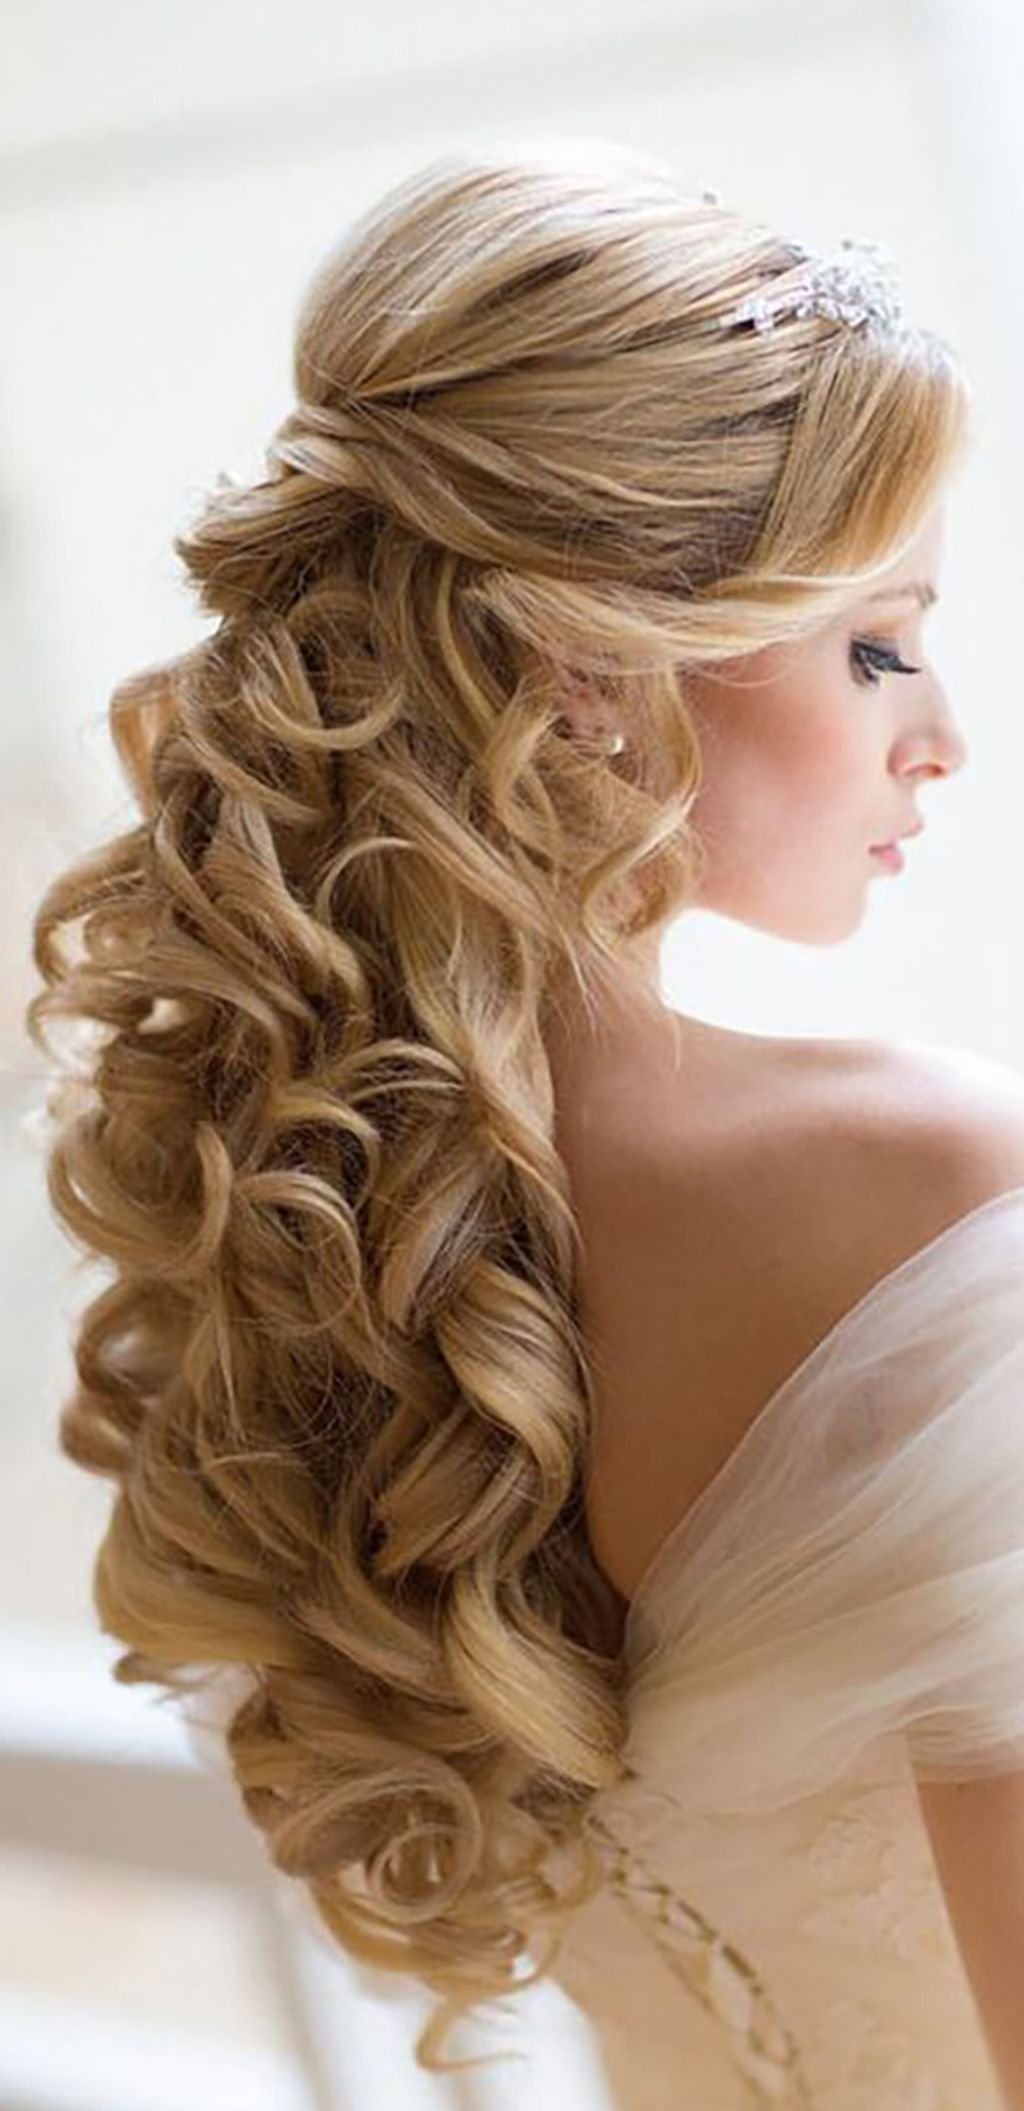 Awesome 86 Classy Wedding Hairstyle Ideas For Long Hair Women Http Lovellywedding Com 2 Hair Styles Long Hair Wedding Styles Wedding Hairstyles For Long Hair